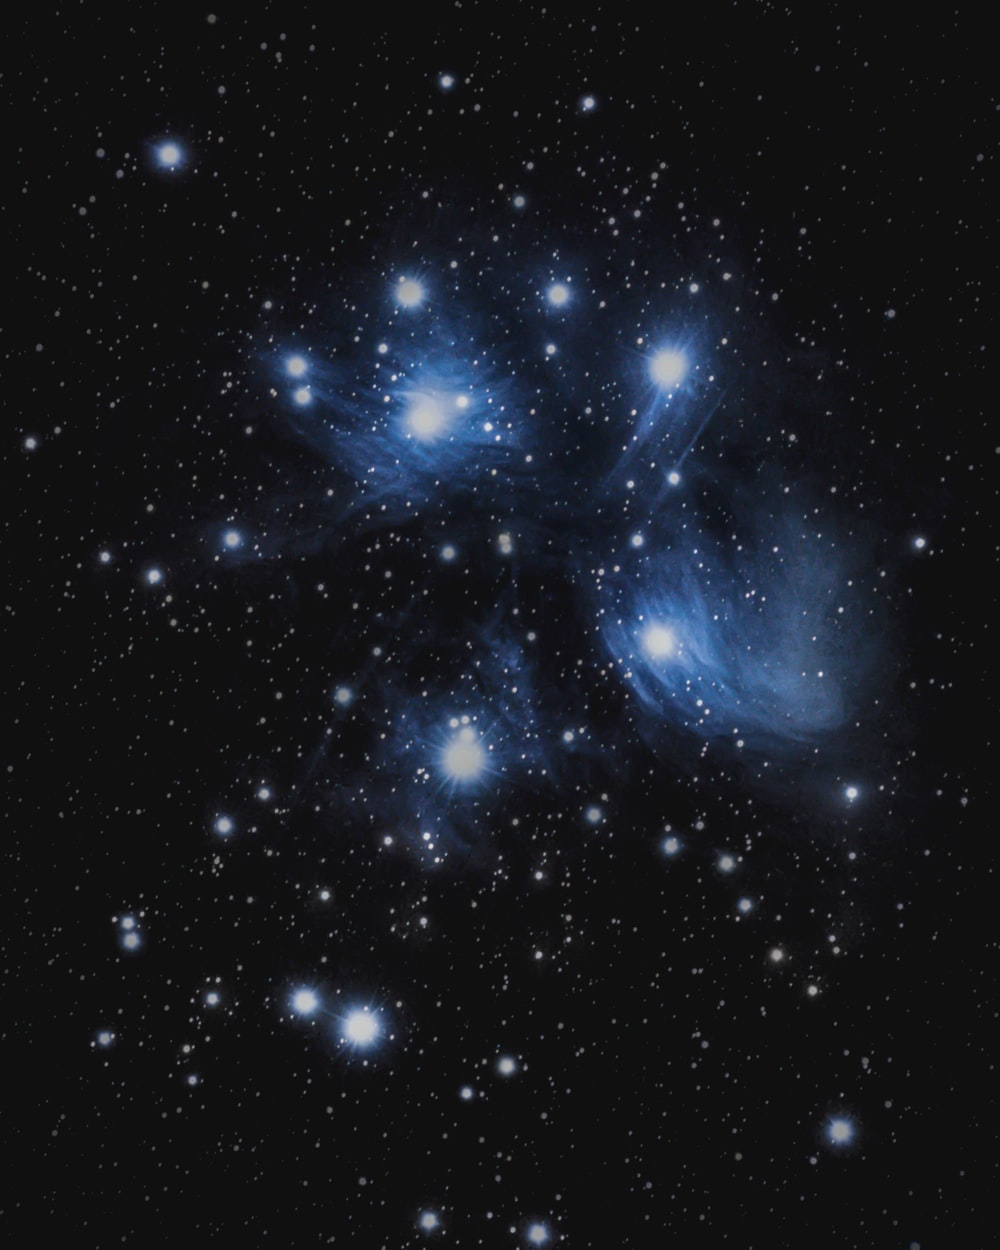 blue and white stars in the sky